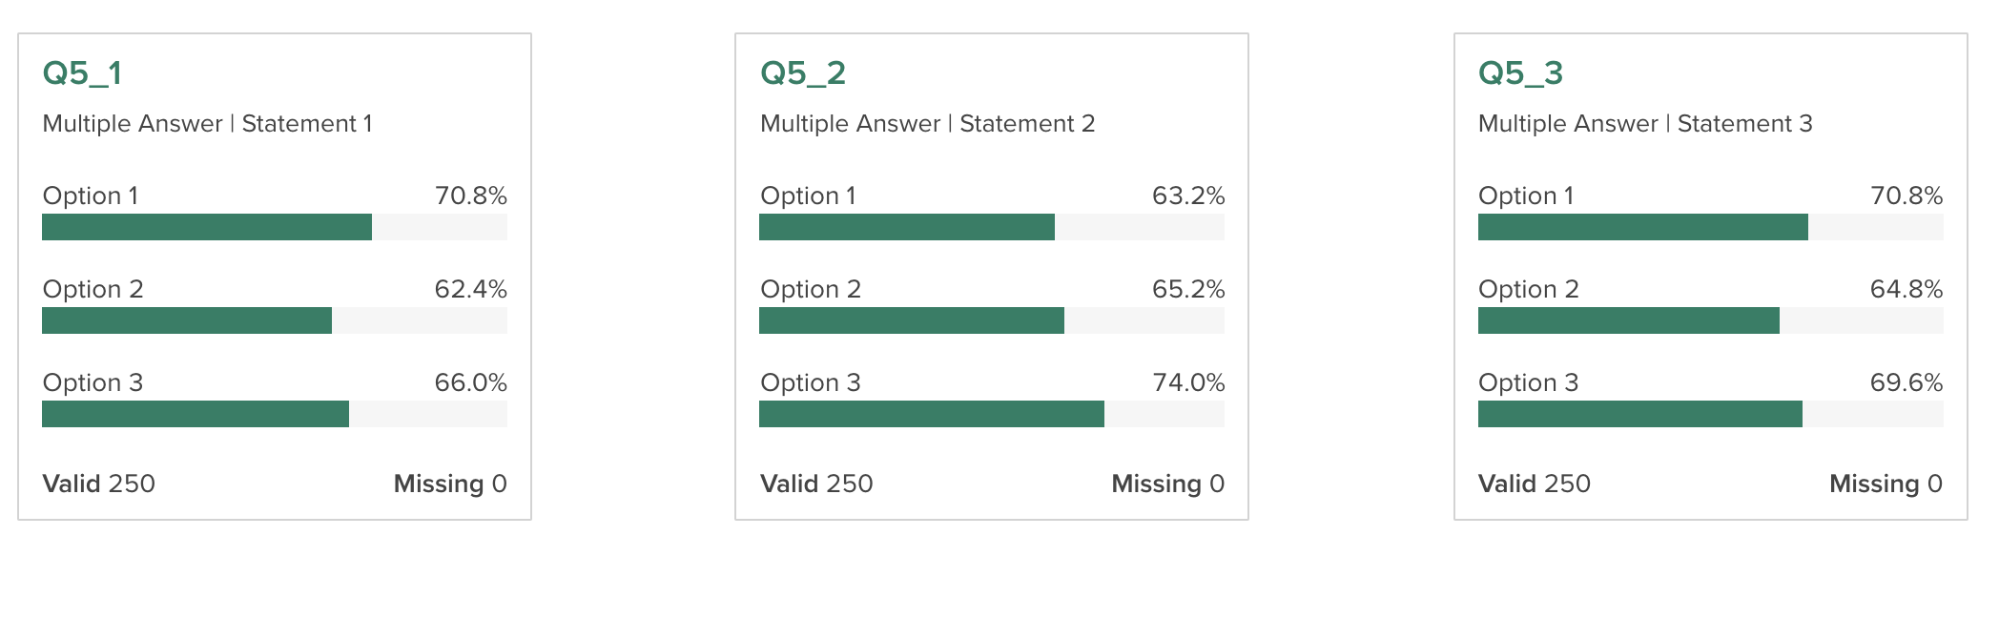 qualtrics-survey-mapping_13.png